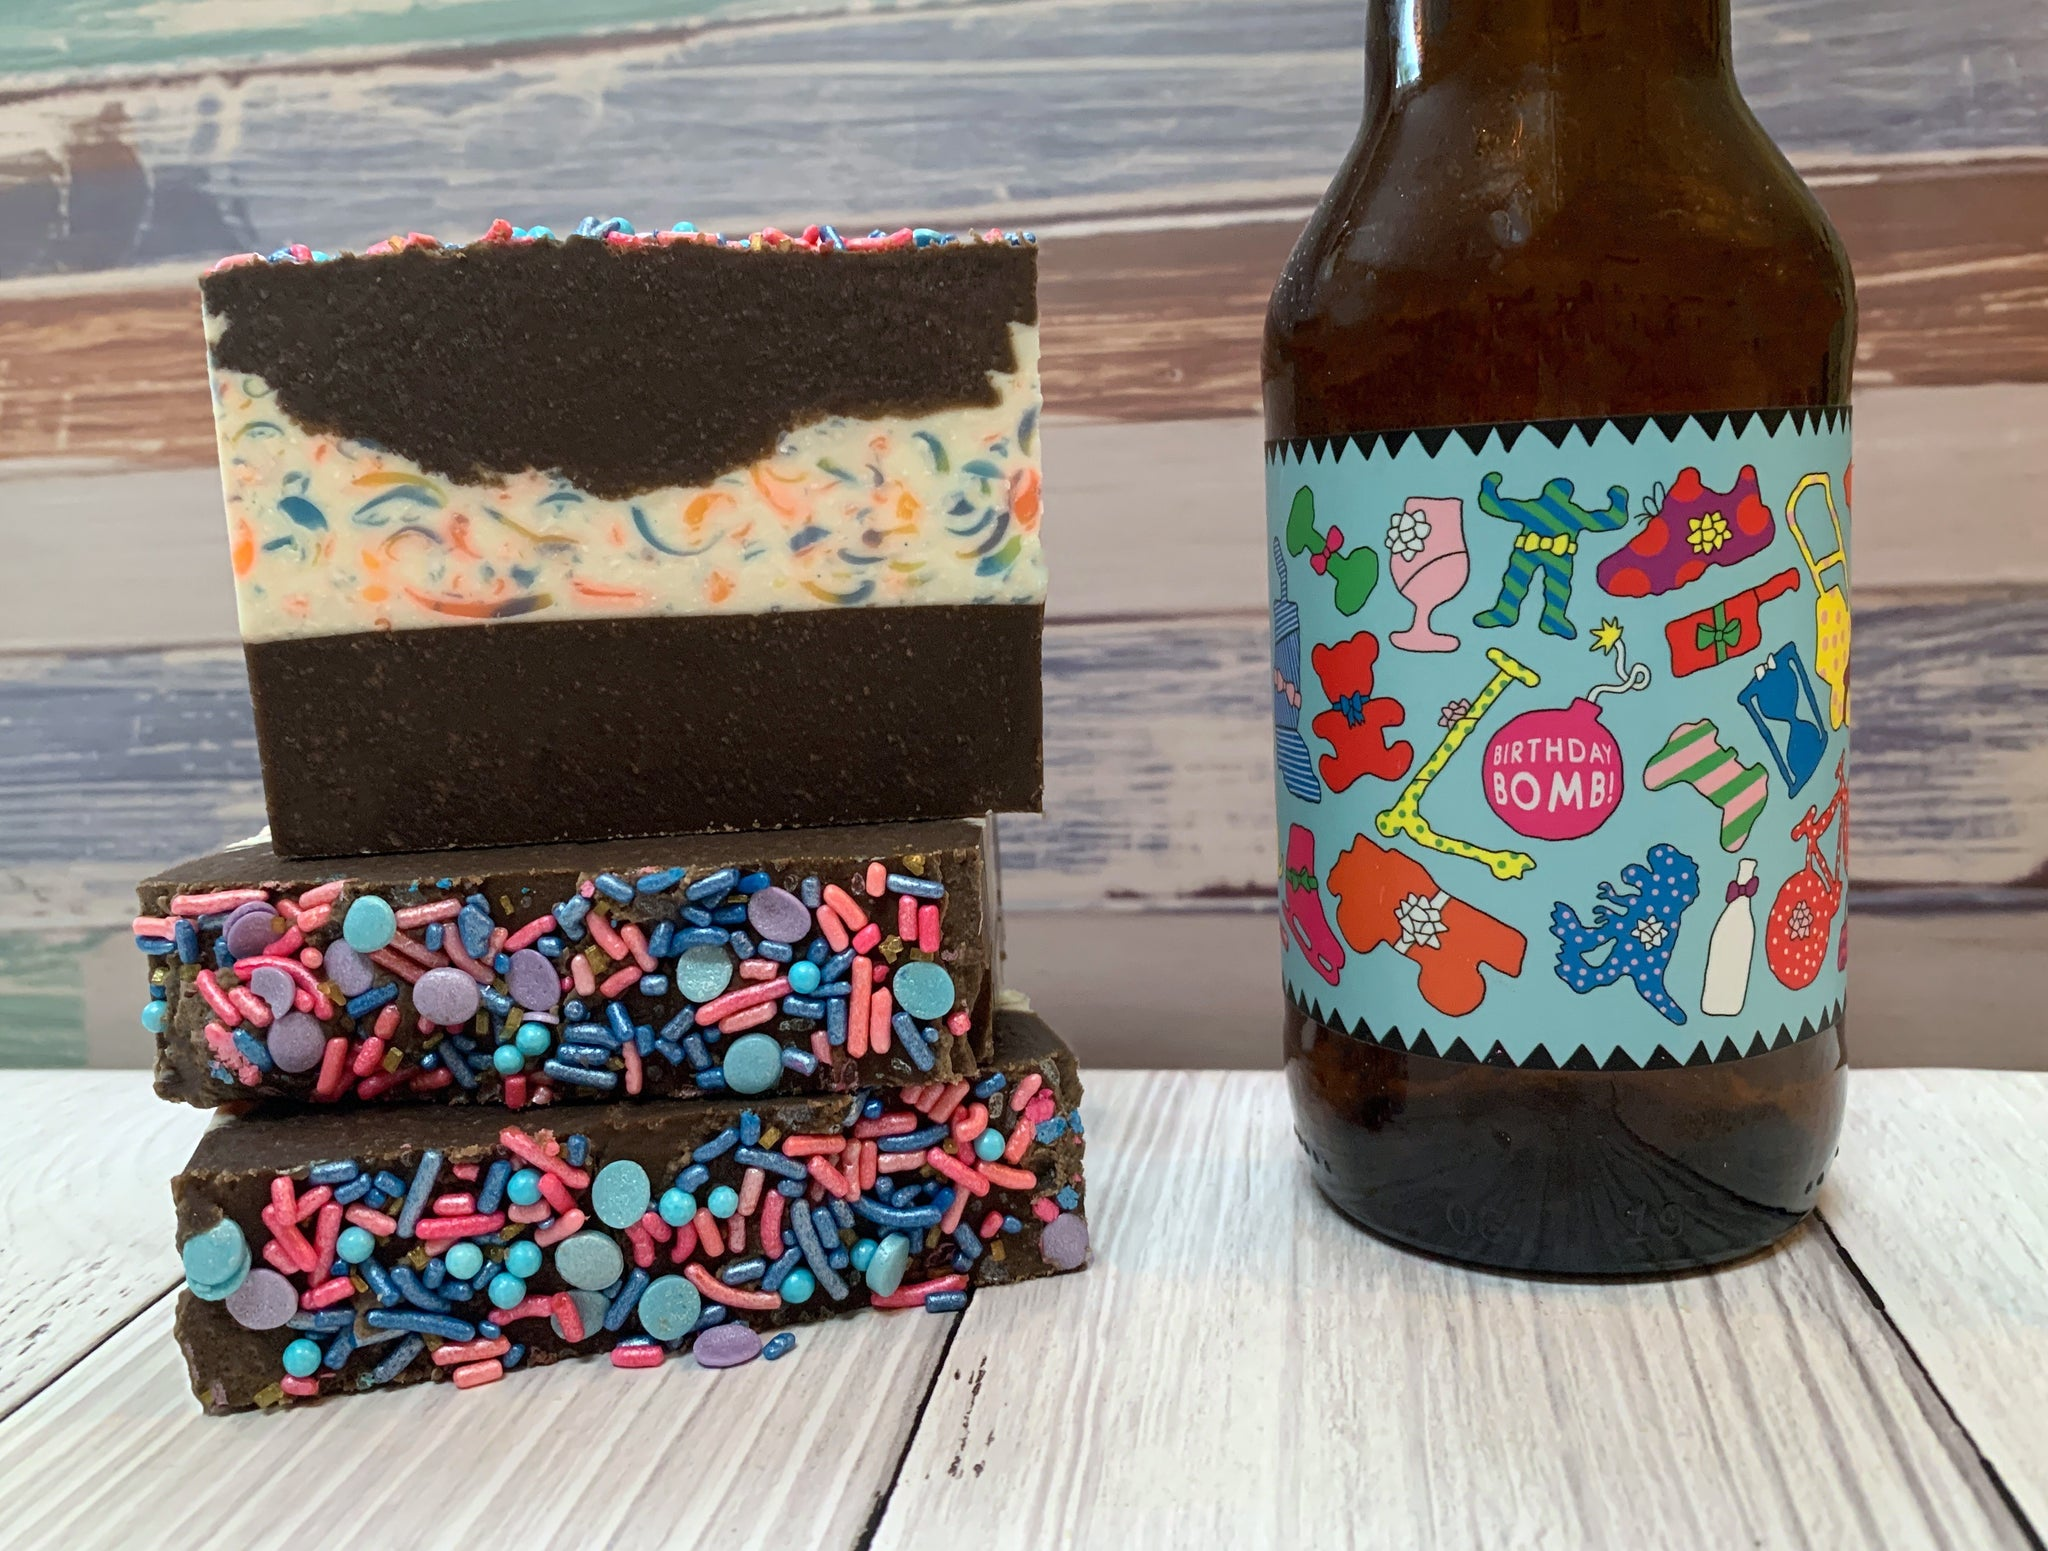 Birthday Bomb! Beer Soap - Spunk N Disorderly Soaps